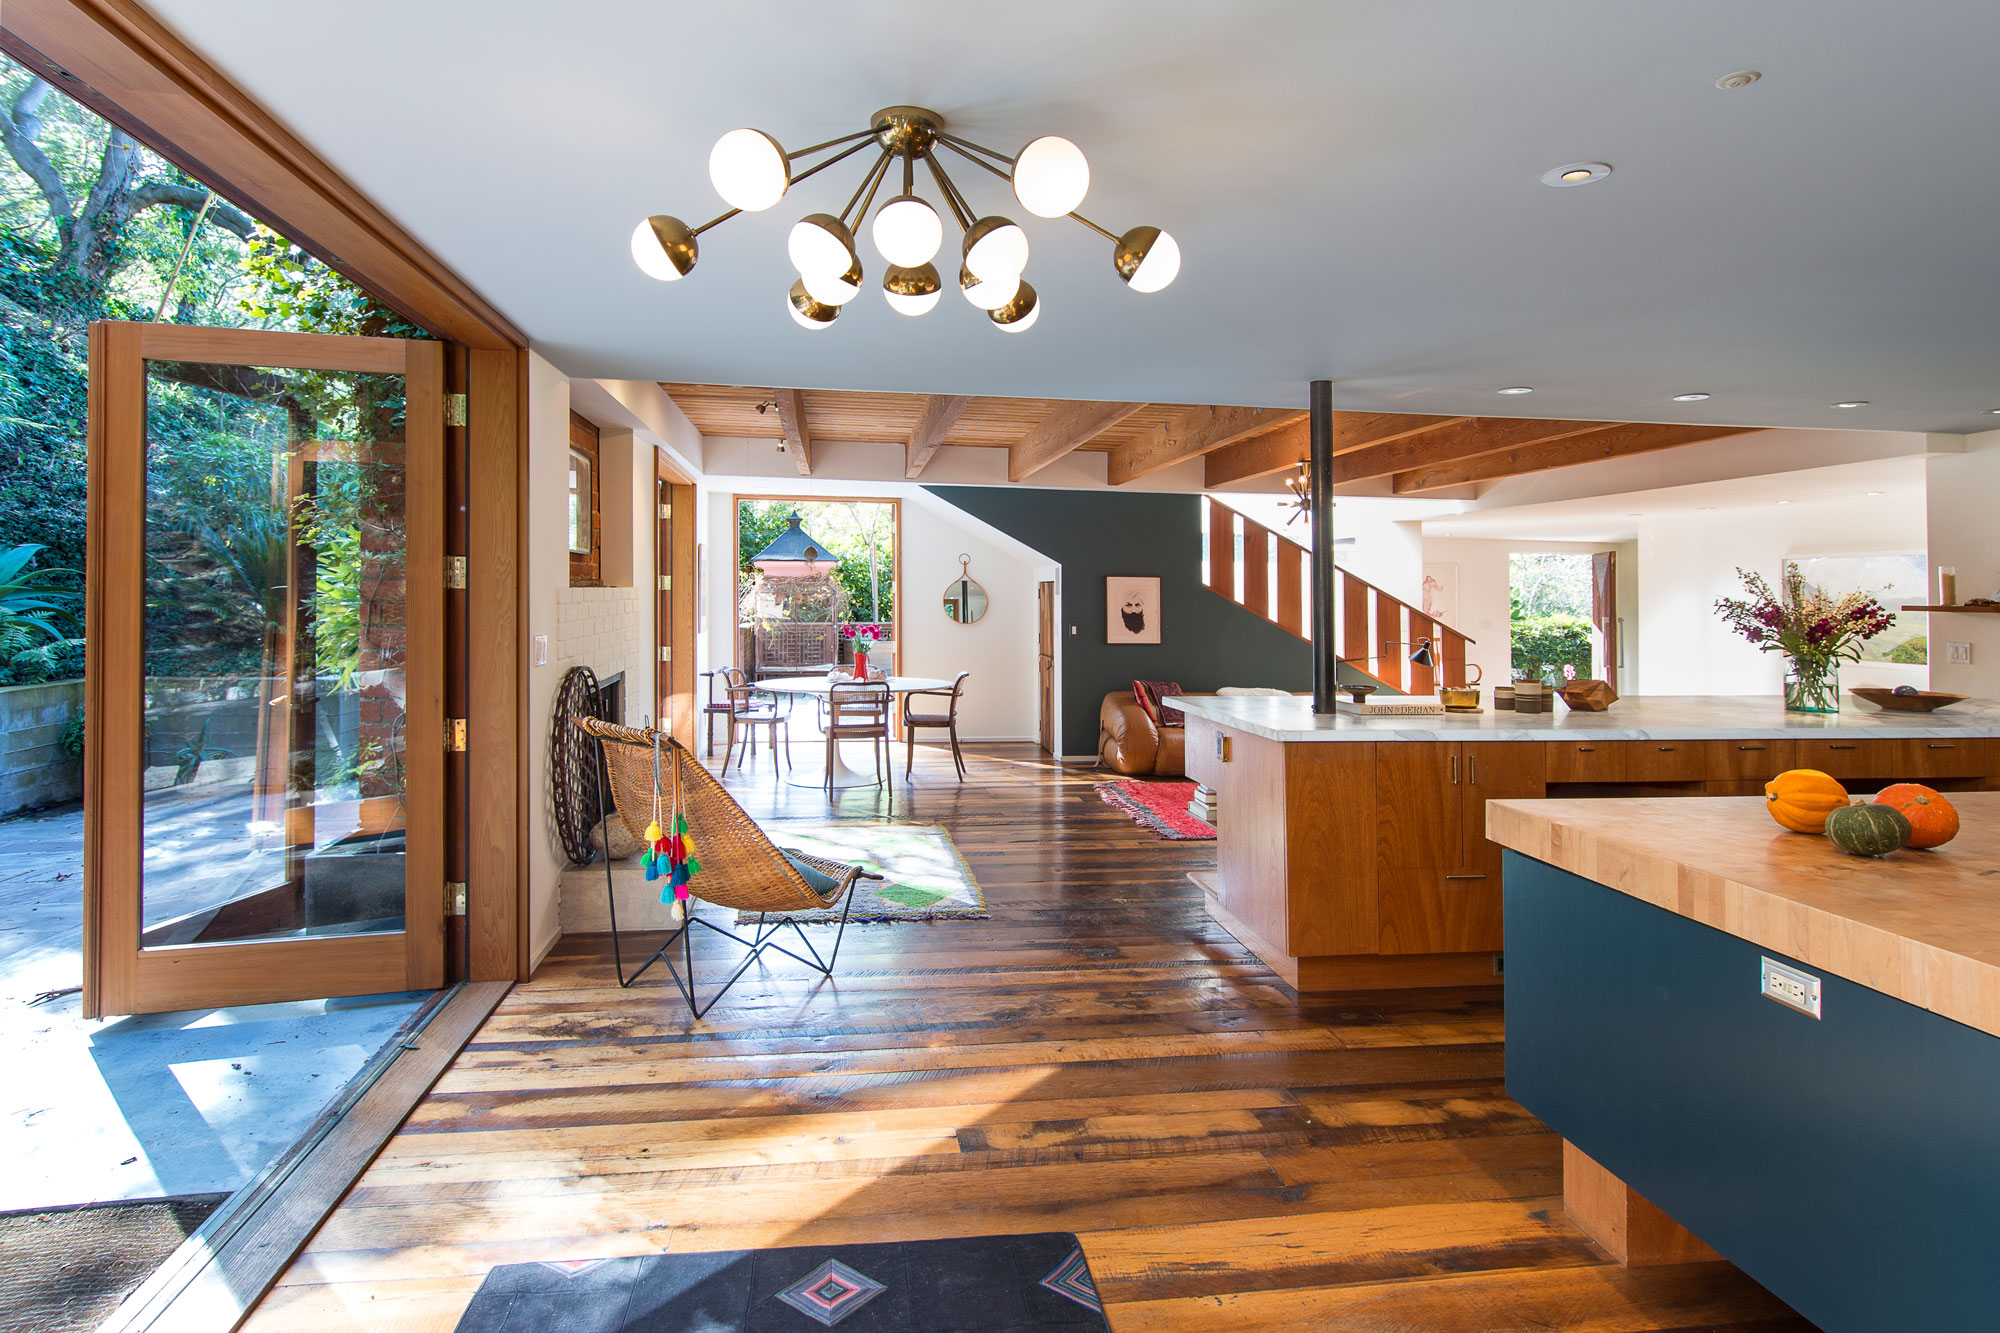 Shingled Rustic Canyon House With Frank Gehry Touch Asks $6.5M